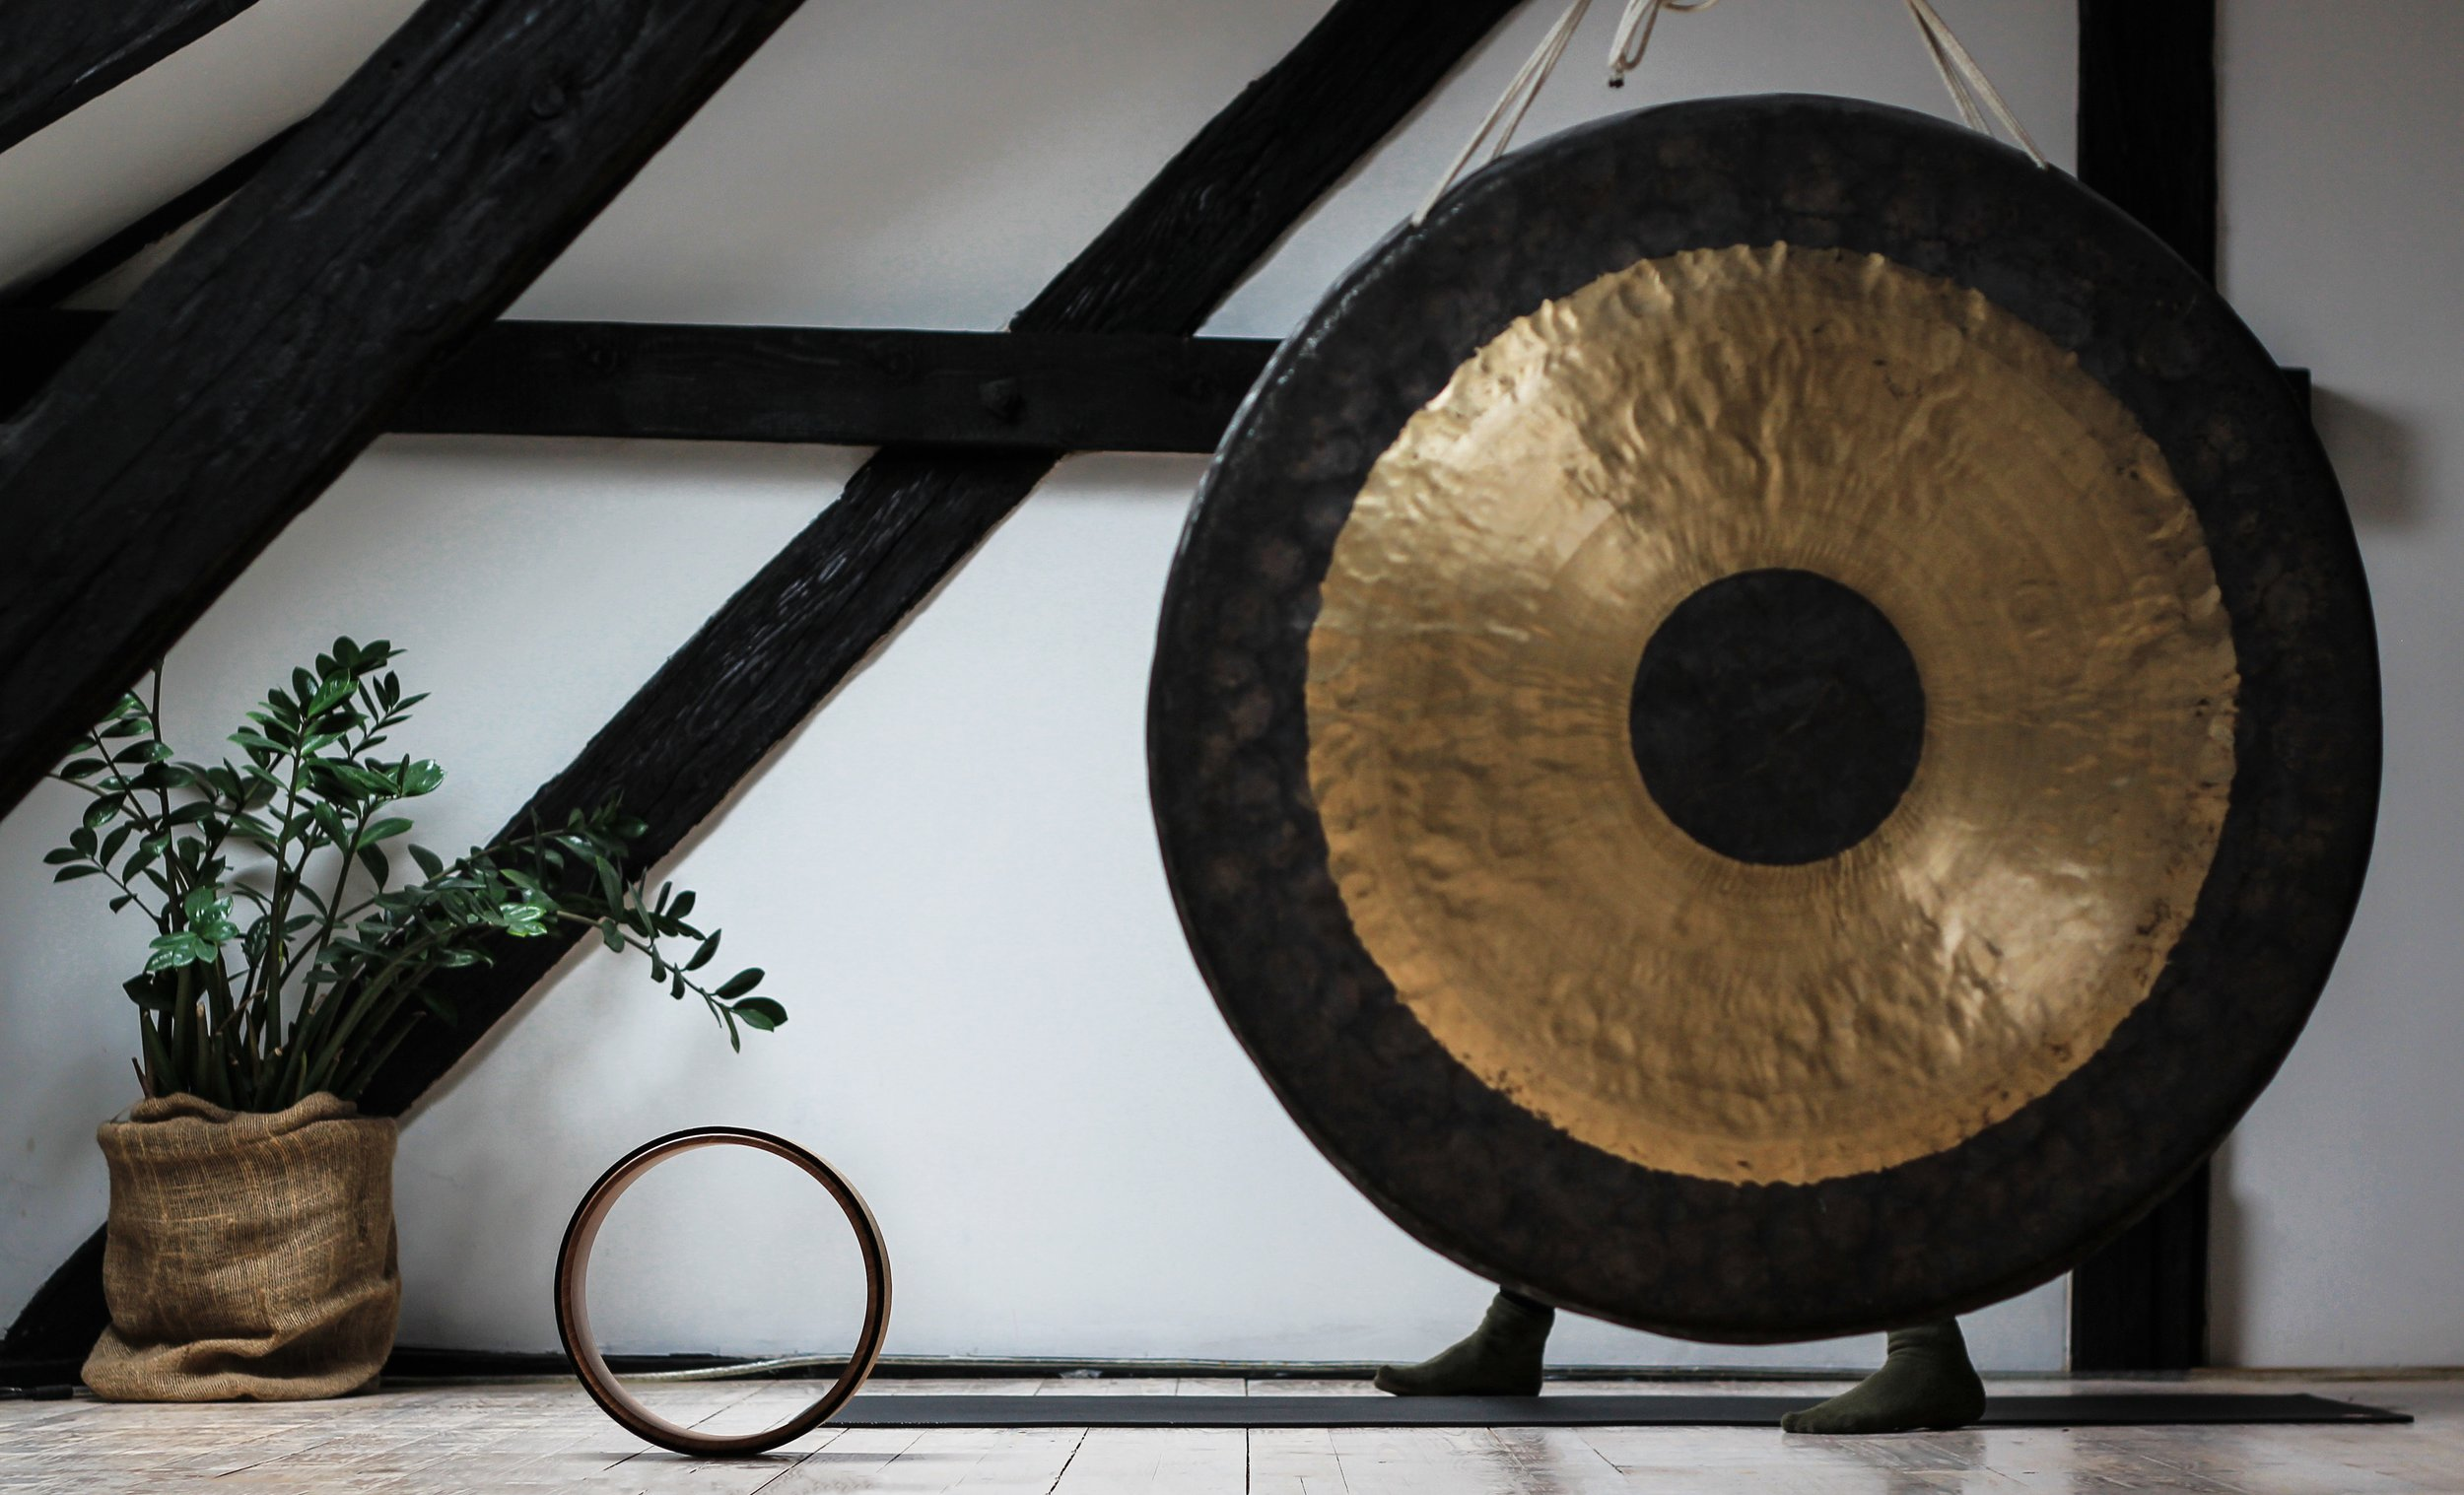 - 10.30-11.00 SOUND HEALING MEDITATIONAfter the yoga session, guests will be able to attend a Gong Bath meditation by a renown sound meditation practioner.